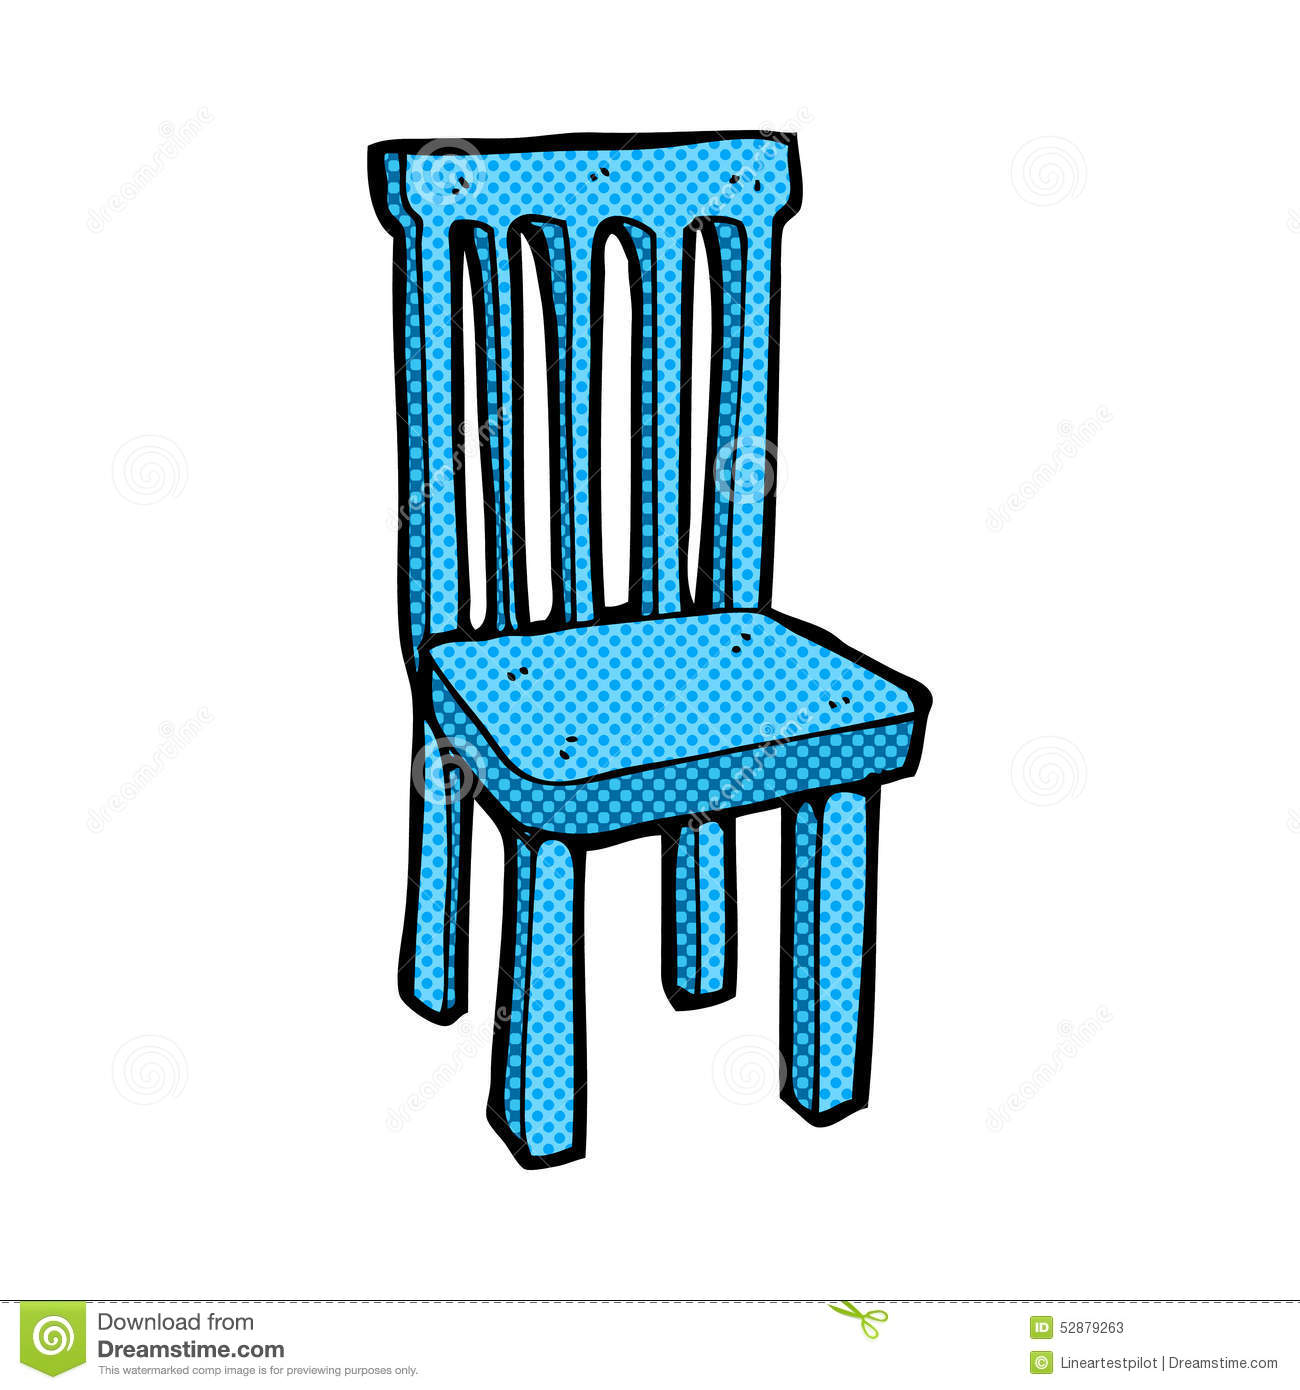 Cartoon chair images reverse search